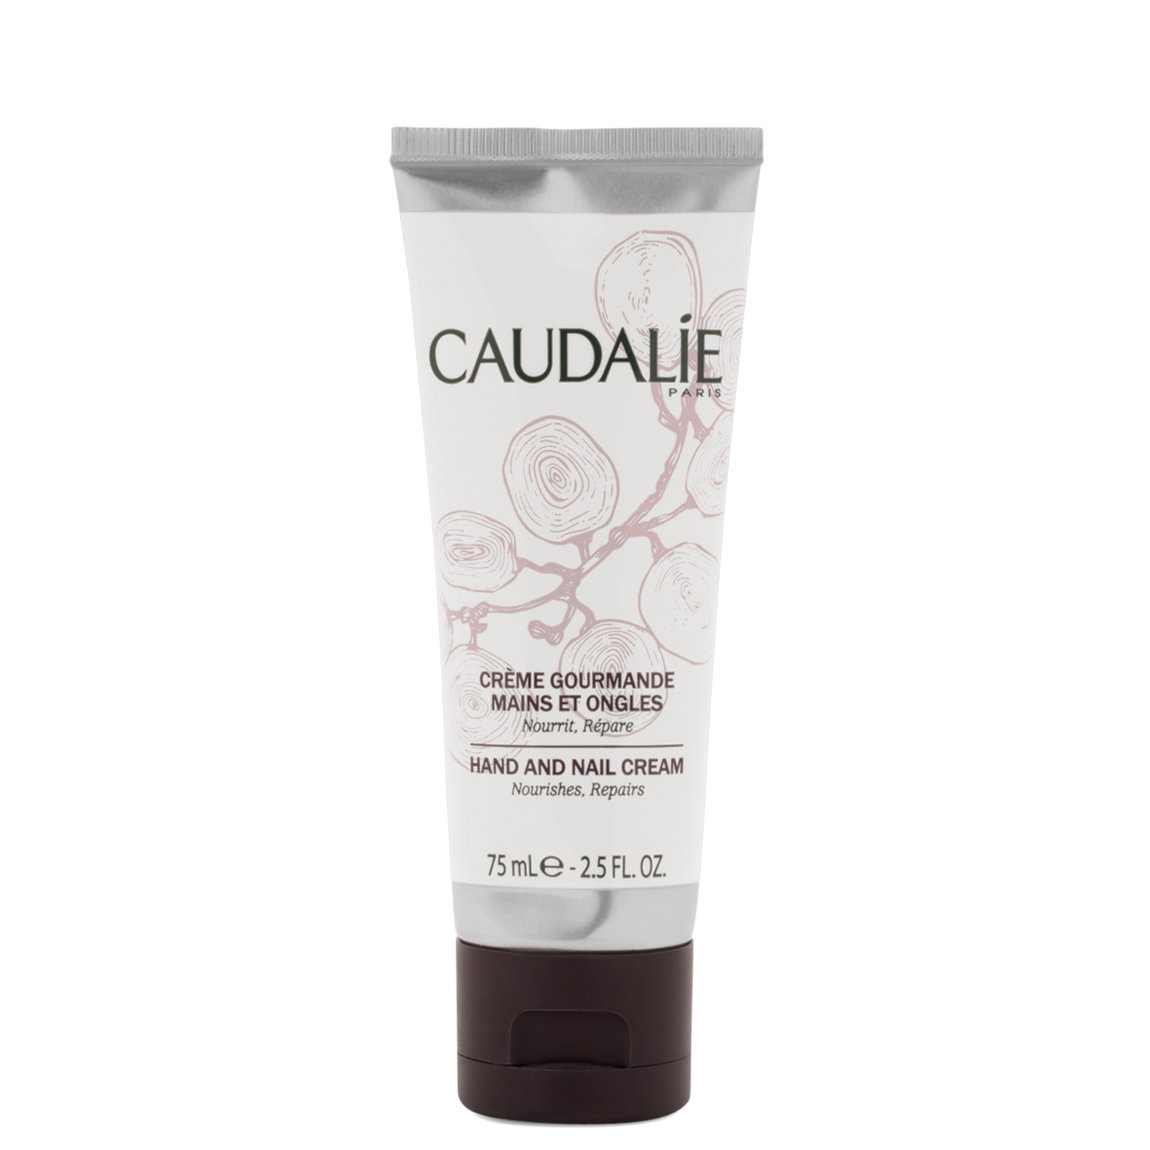 Caudalie Hand And Nail Cream product swatch.